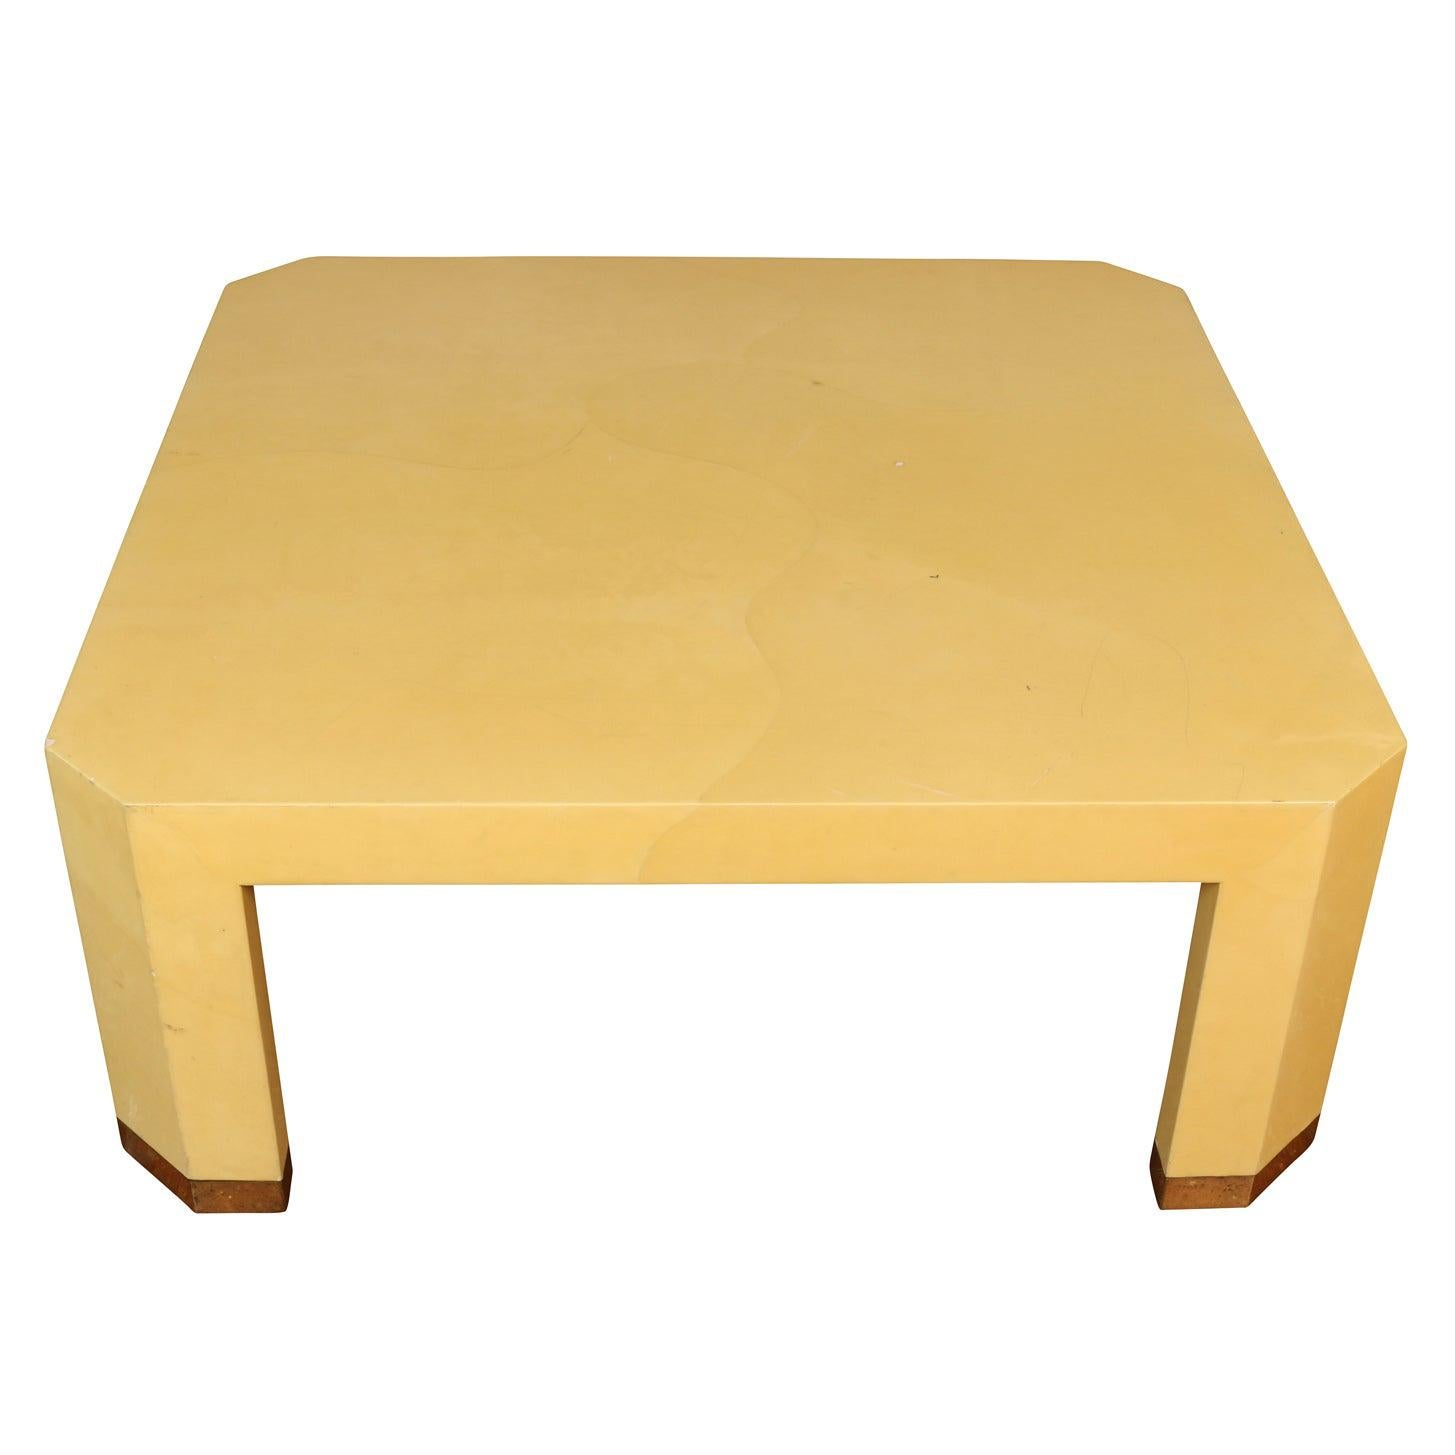 Karl Springer Style Lacquered Goatskin Square Coffee Table